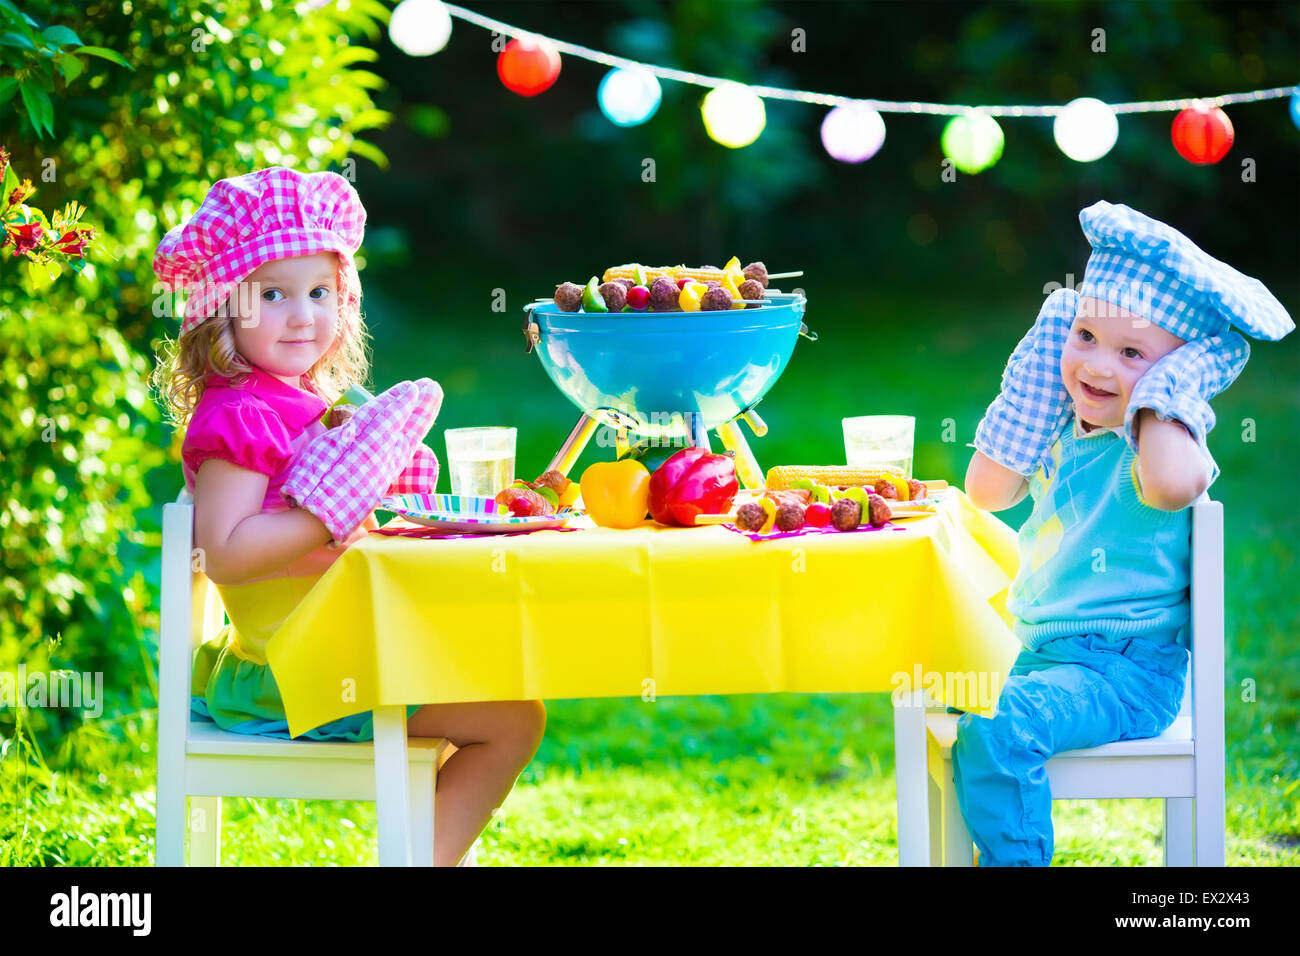 Children grilling meat. Family camping and enjoying BBQ. Brother and sister at barbecue preparing steaks and sausages. - Stock Image